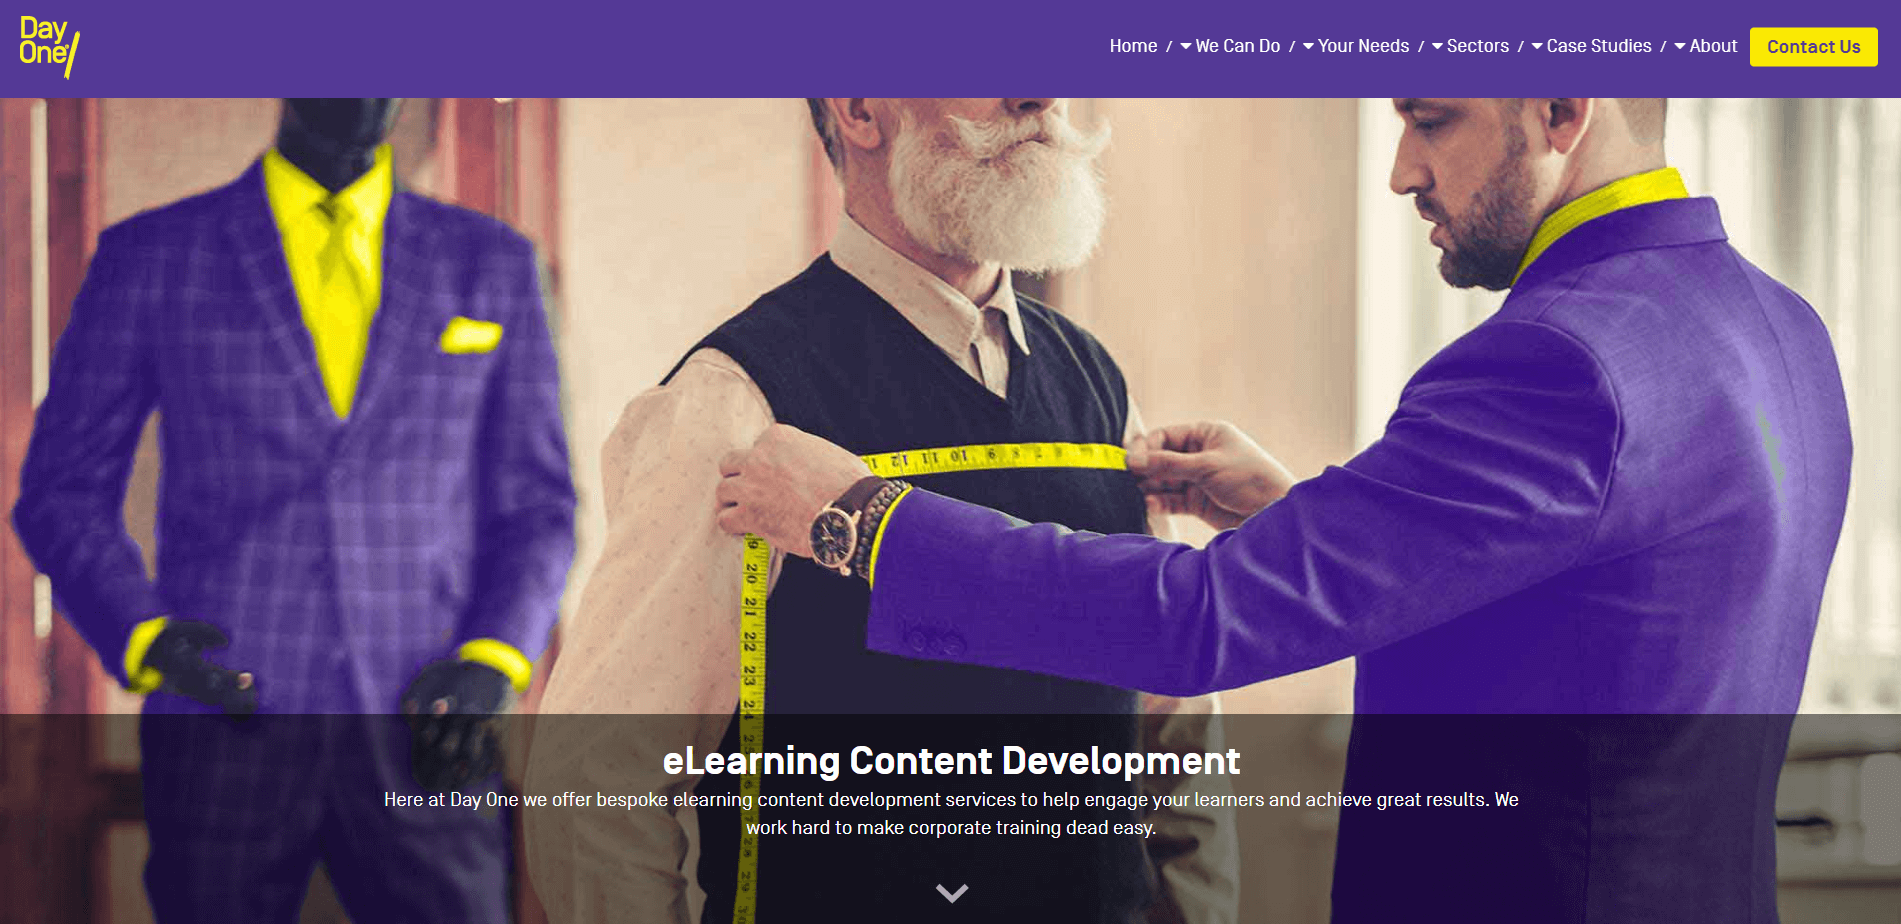 e-learning content development company, Day One